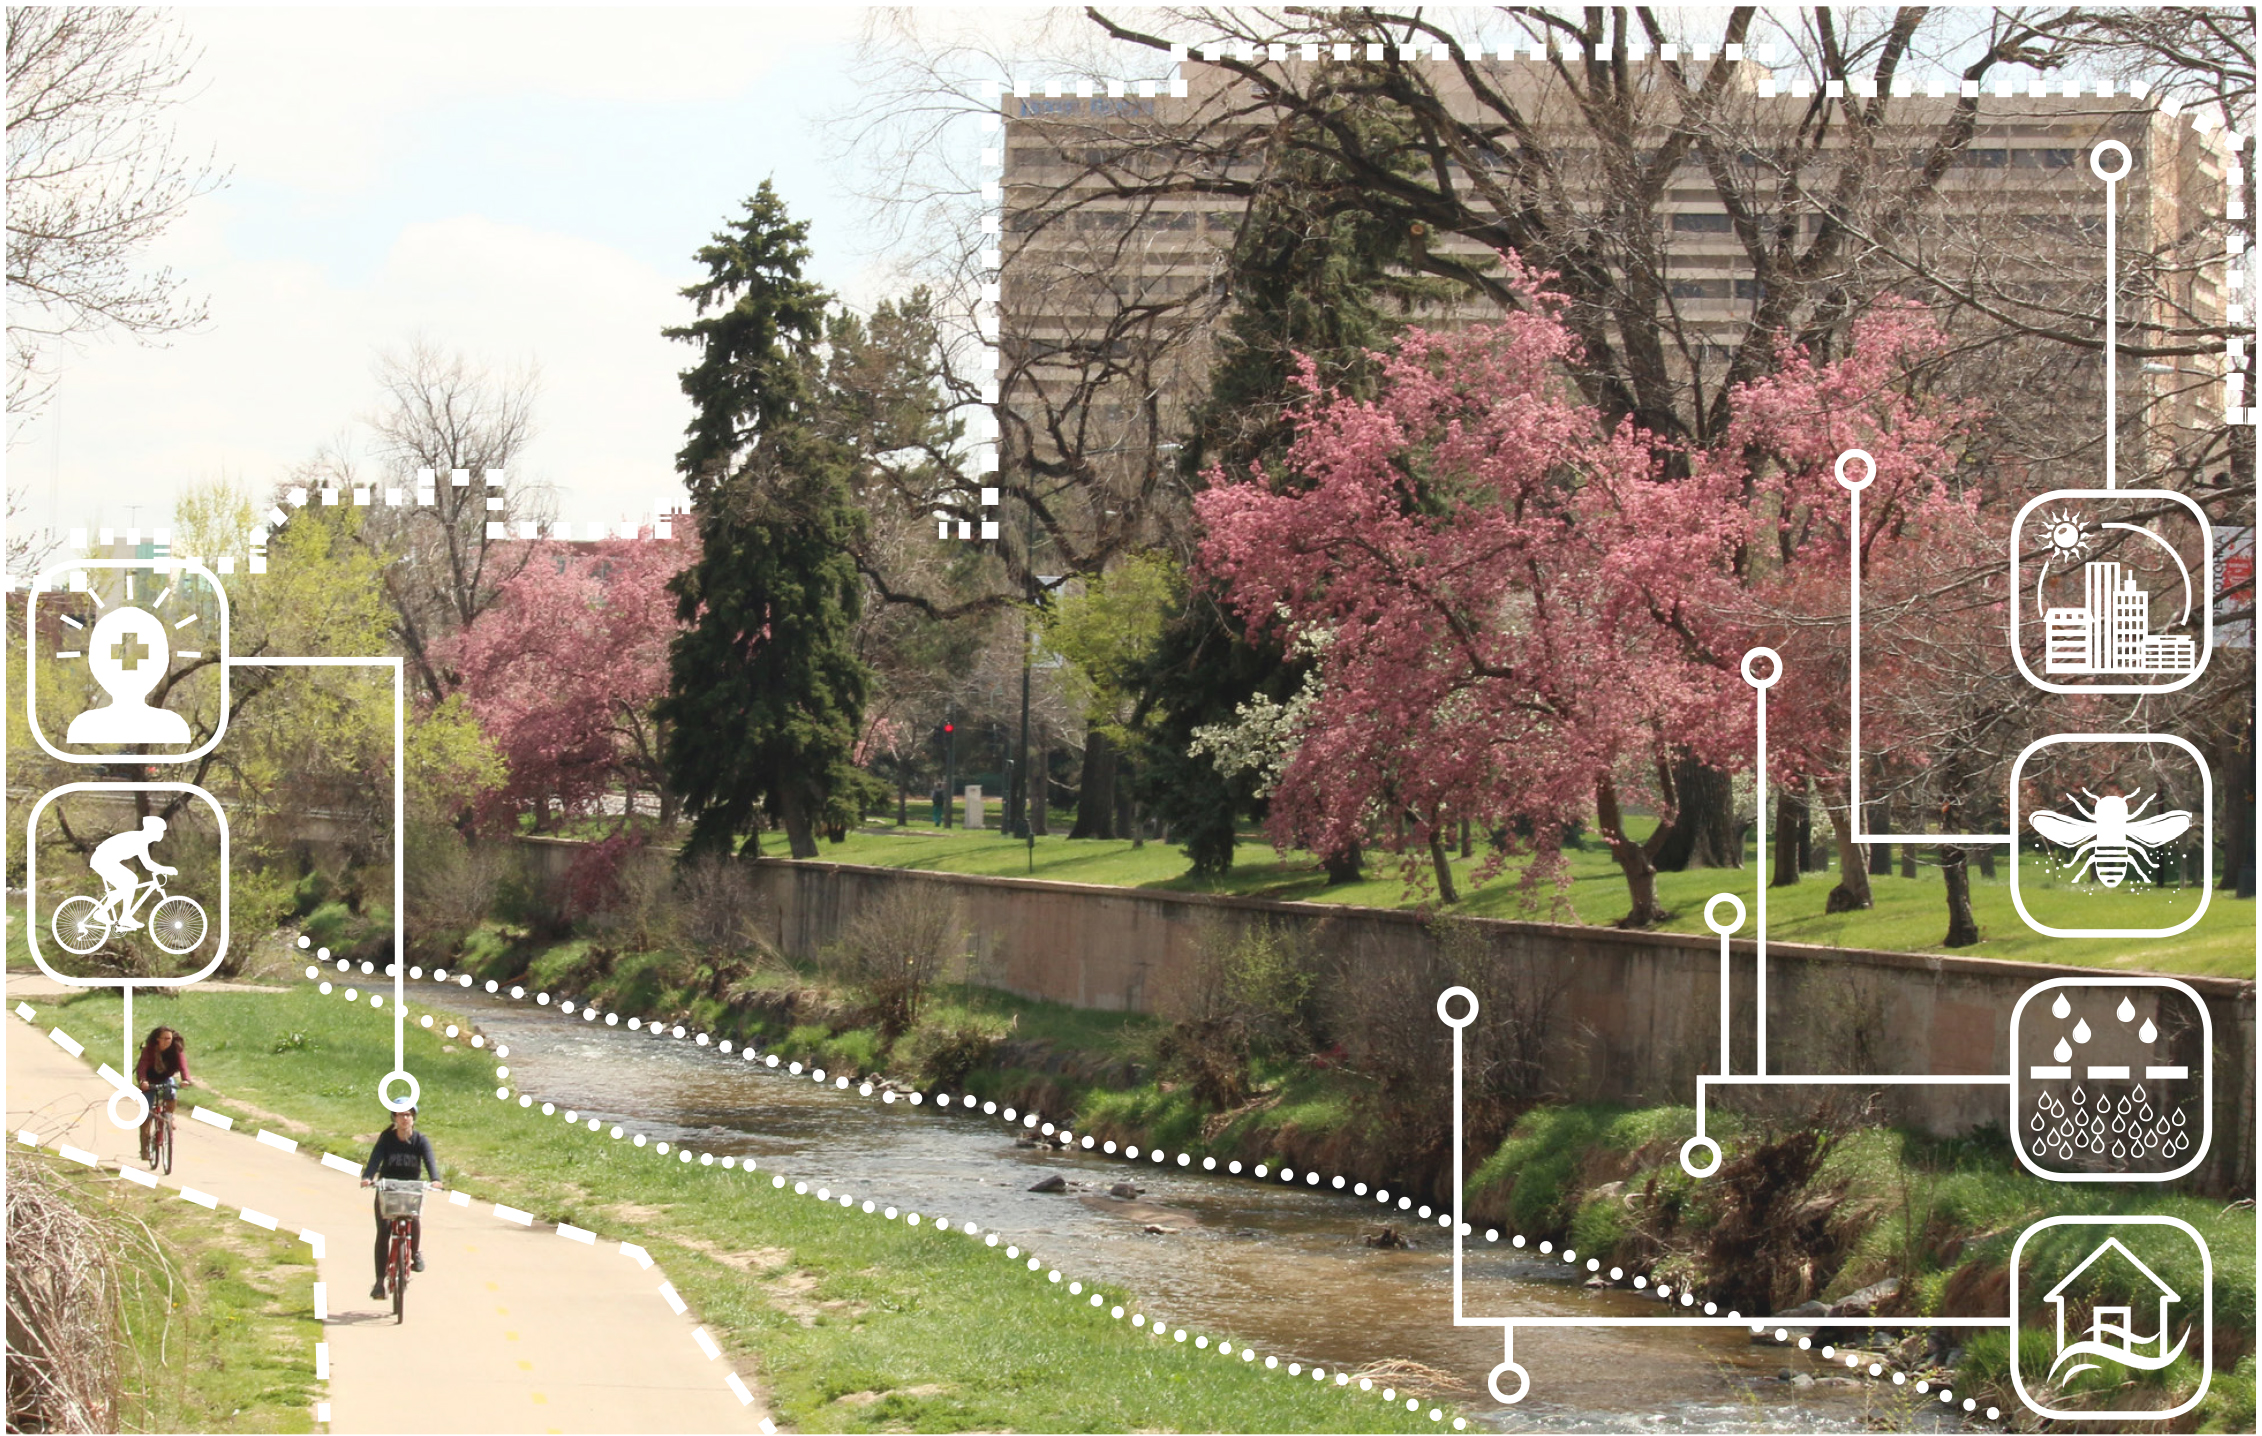 Urban ecosystem services, with a creek, pink blooming trees, and people biking on a bike path. White icons are placed over the image to indicate ecosystem services.